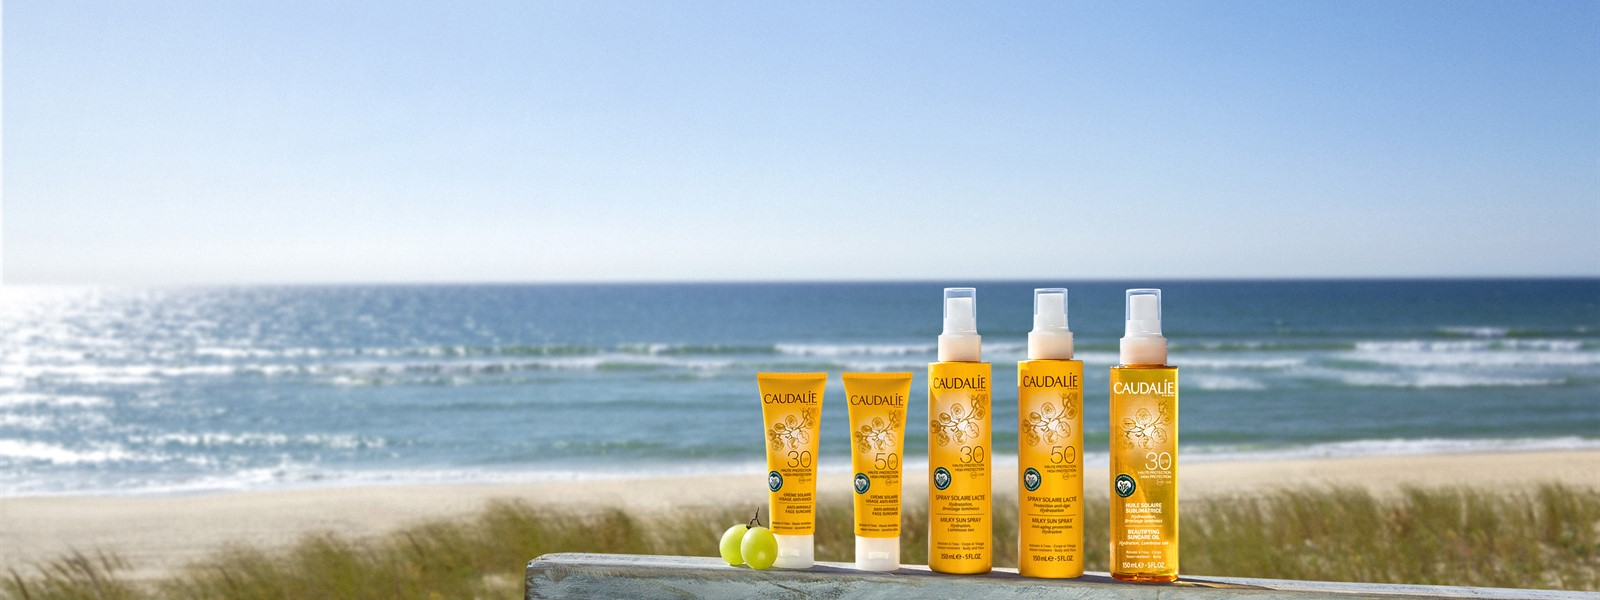 Picture of Caudalie reef-safe sunscreen products with the ocean in the background.